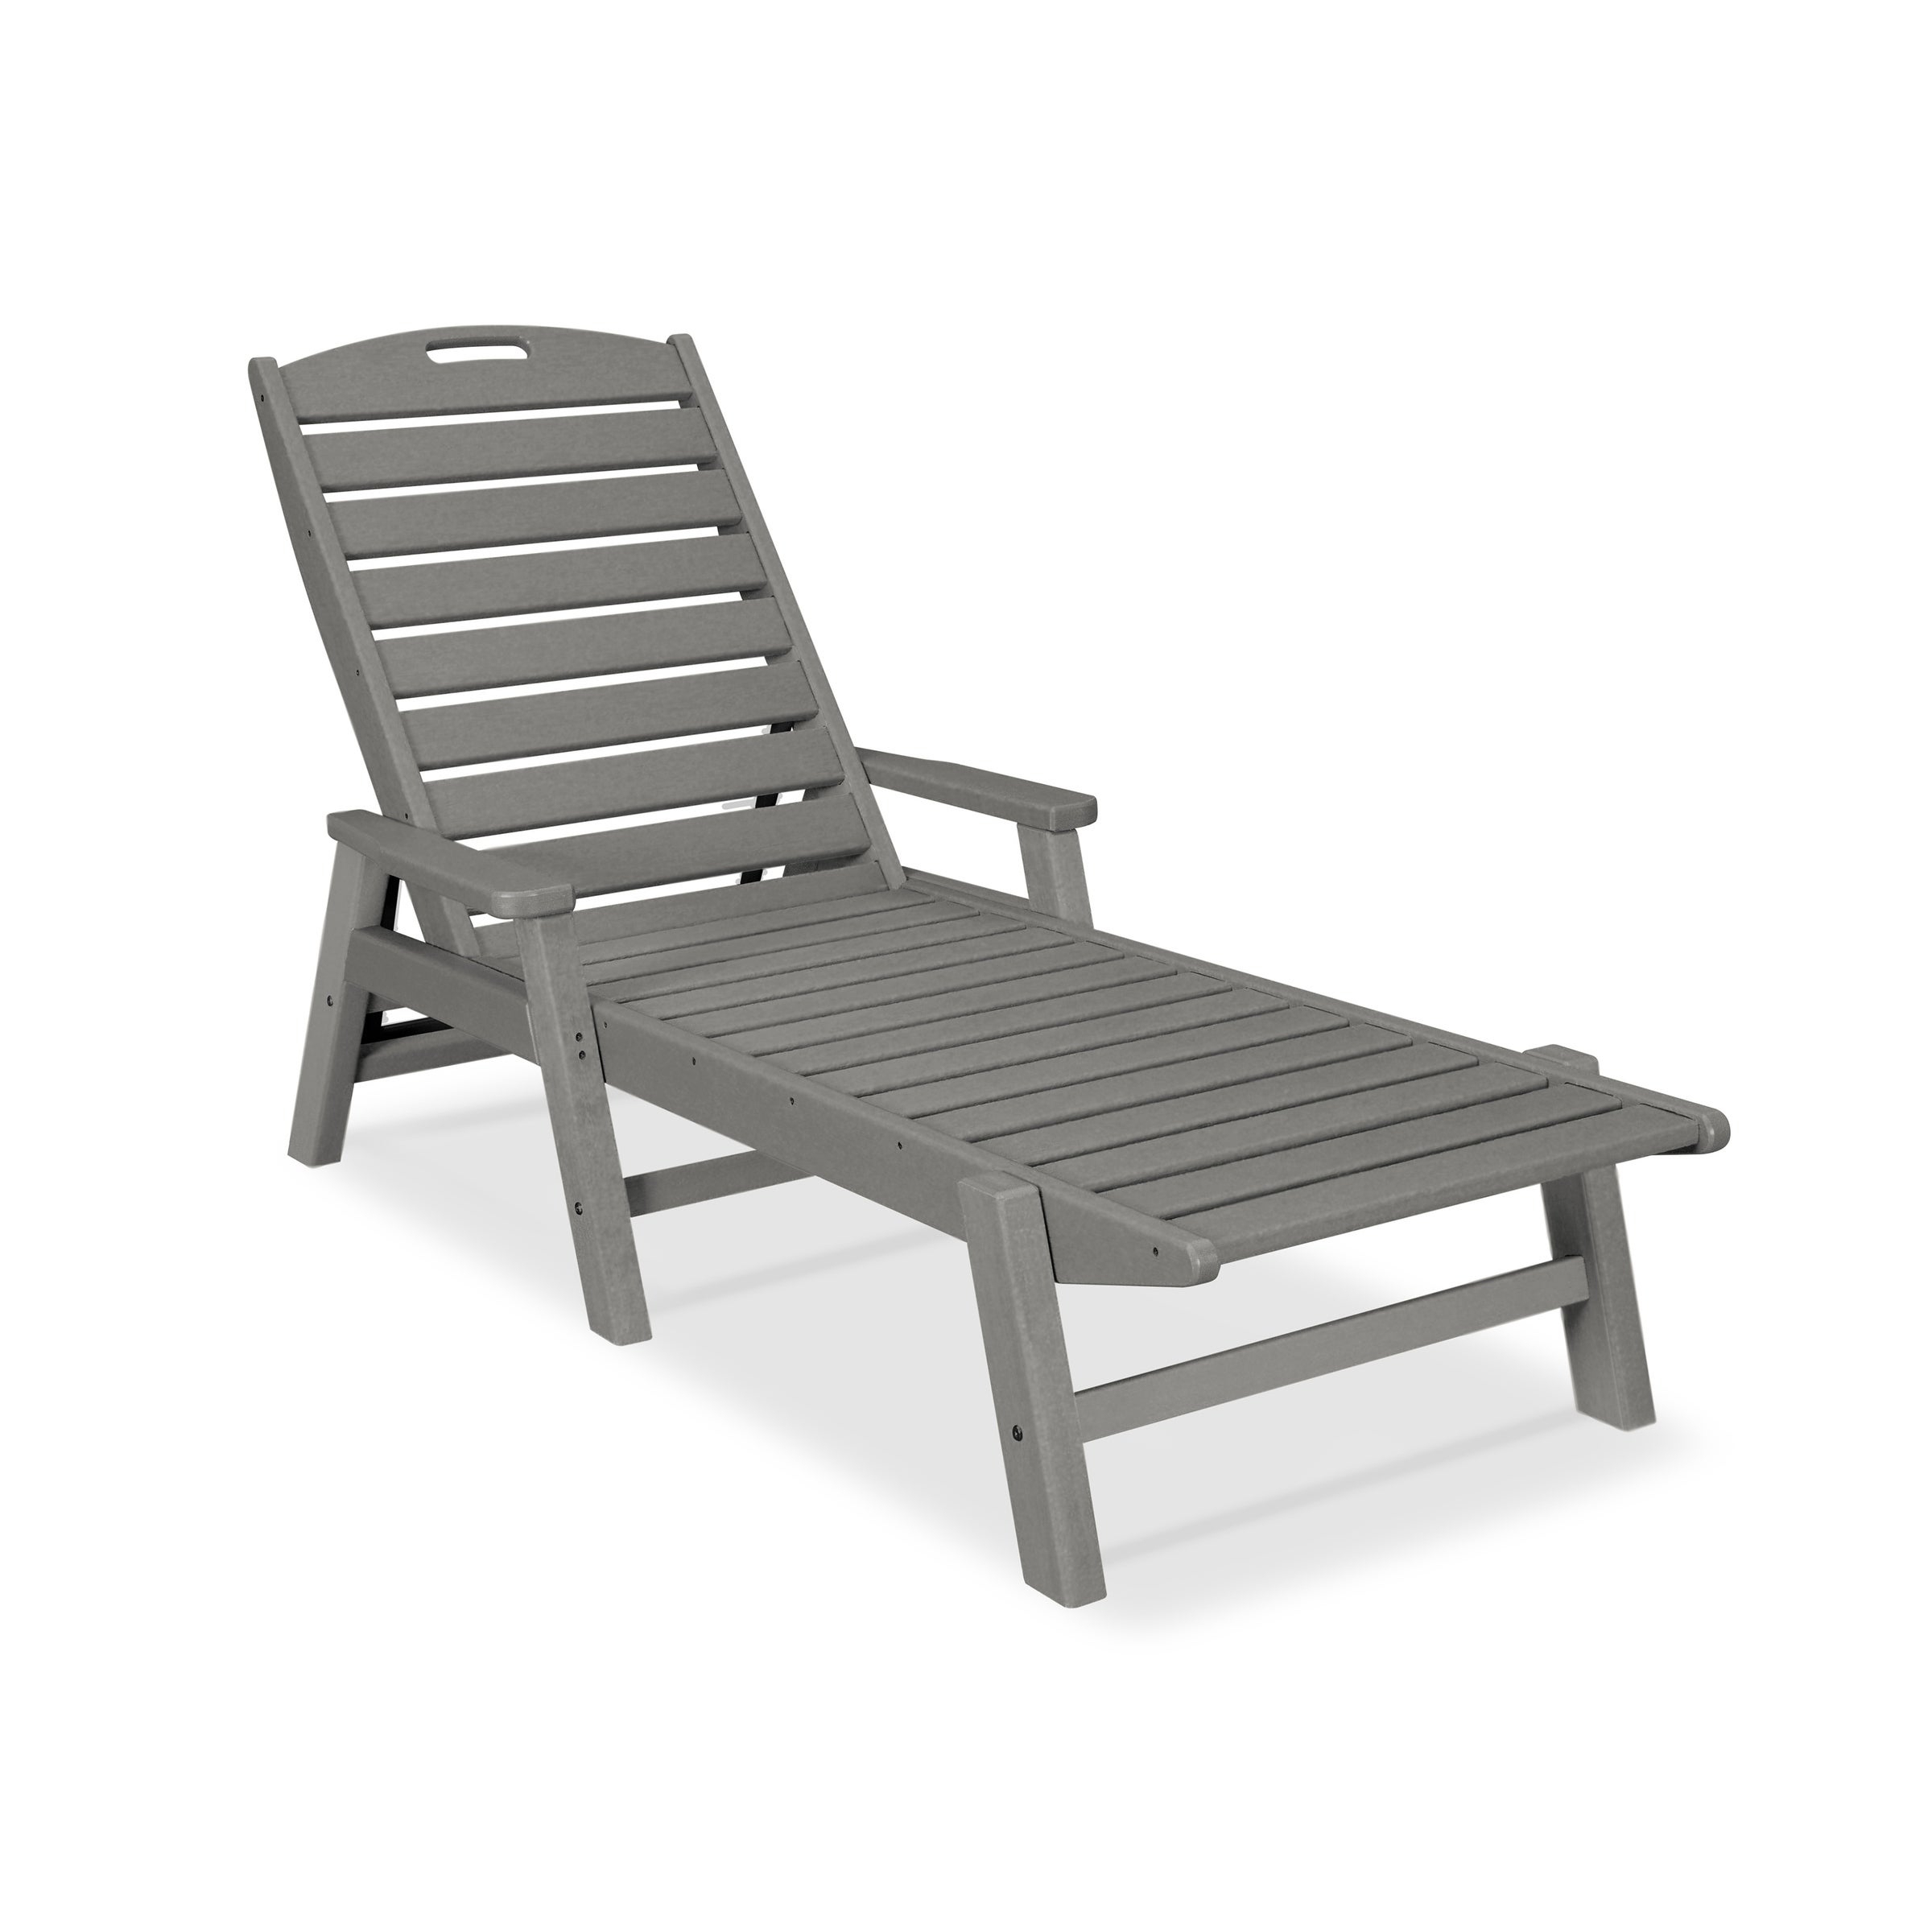 Polywood® Nautical Outdoor Chaise Lounge With Arms, Stackable, Ncc2280 Throughout Famous Nautical Outdoor Chaise Lounges With Arms (View 3 of 25)